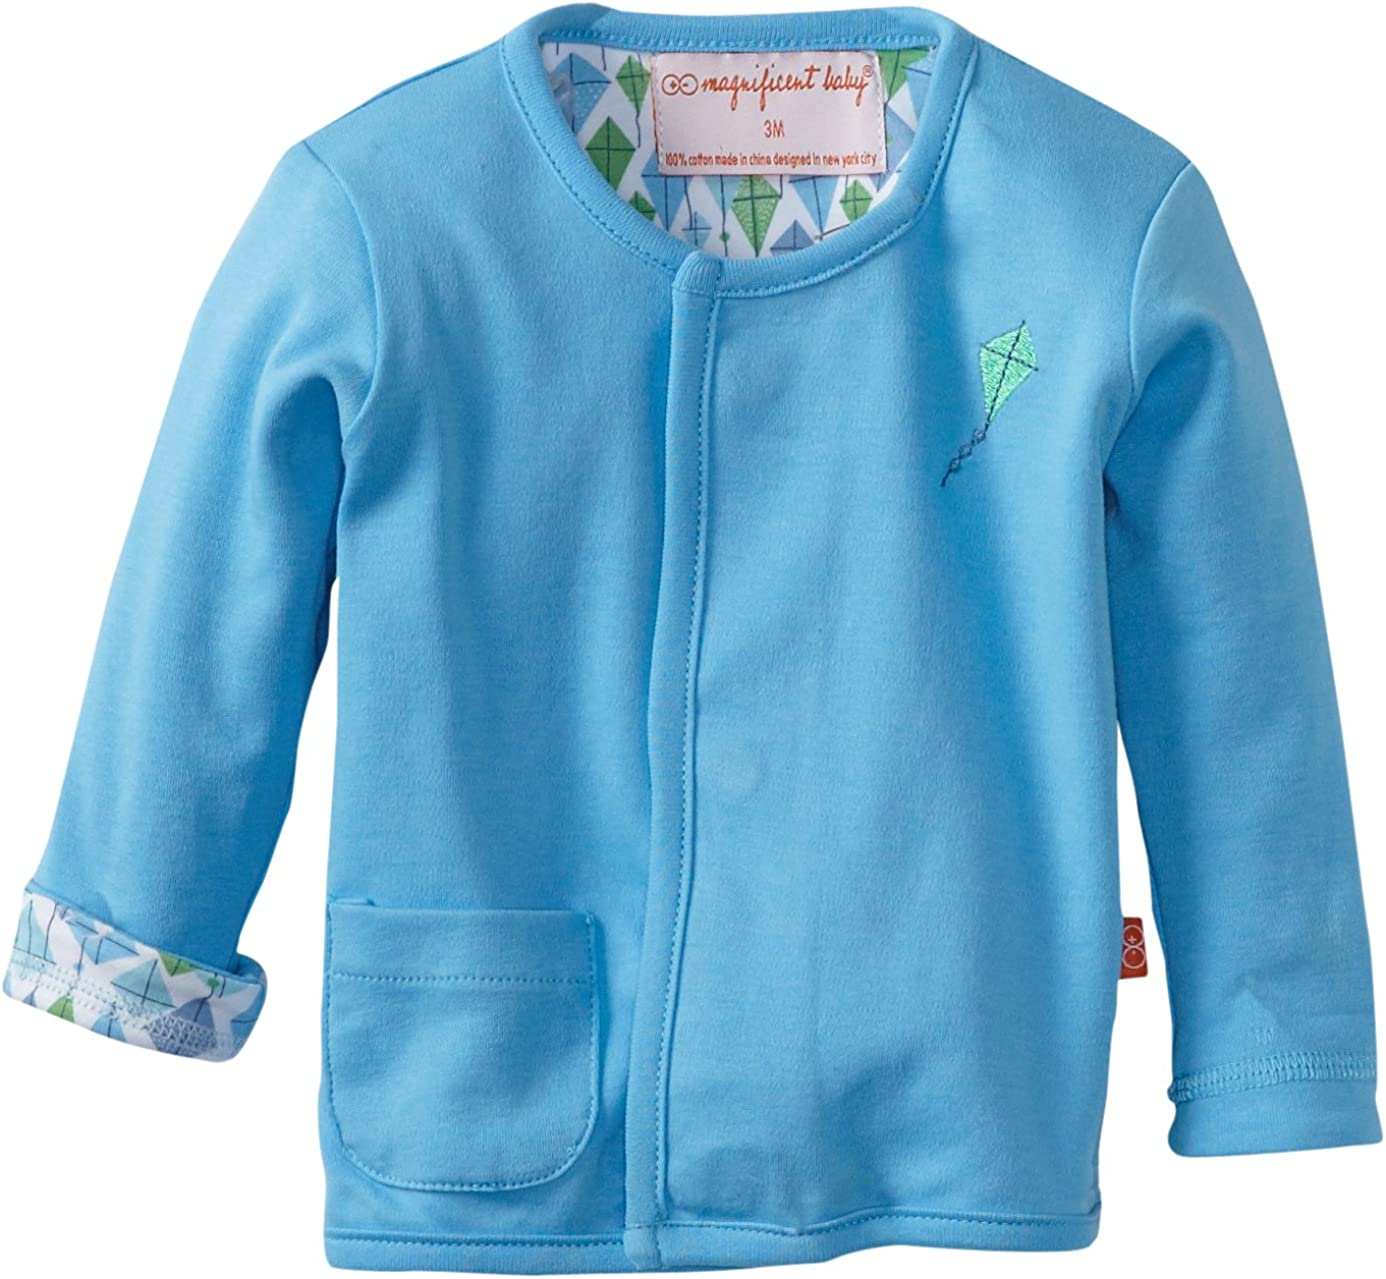 Magnificent Baby Baby-Boys Newborn Reversible Cardigan